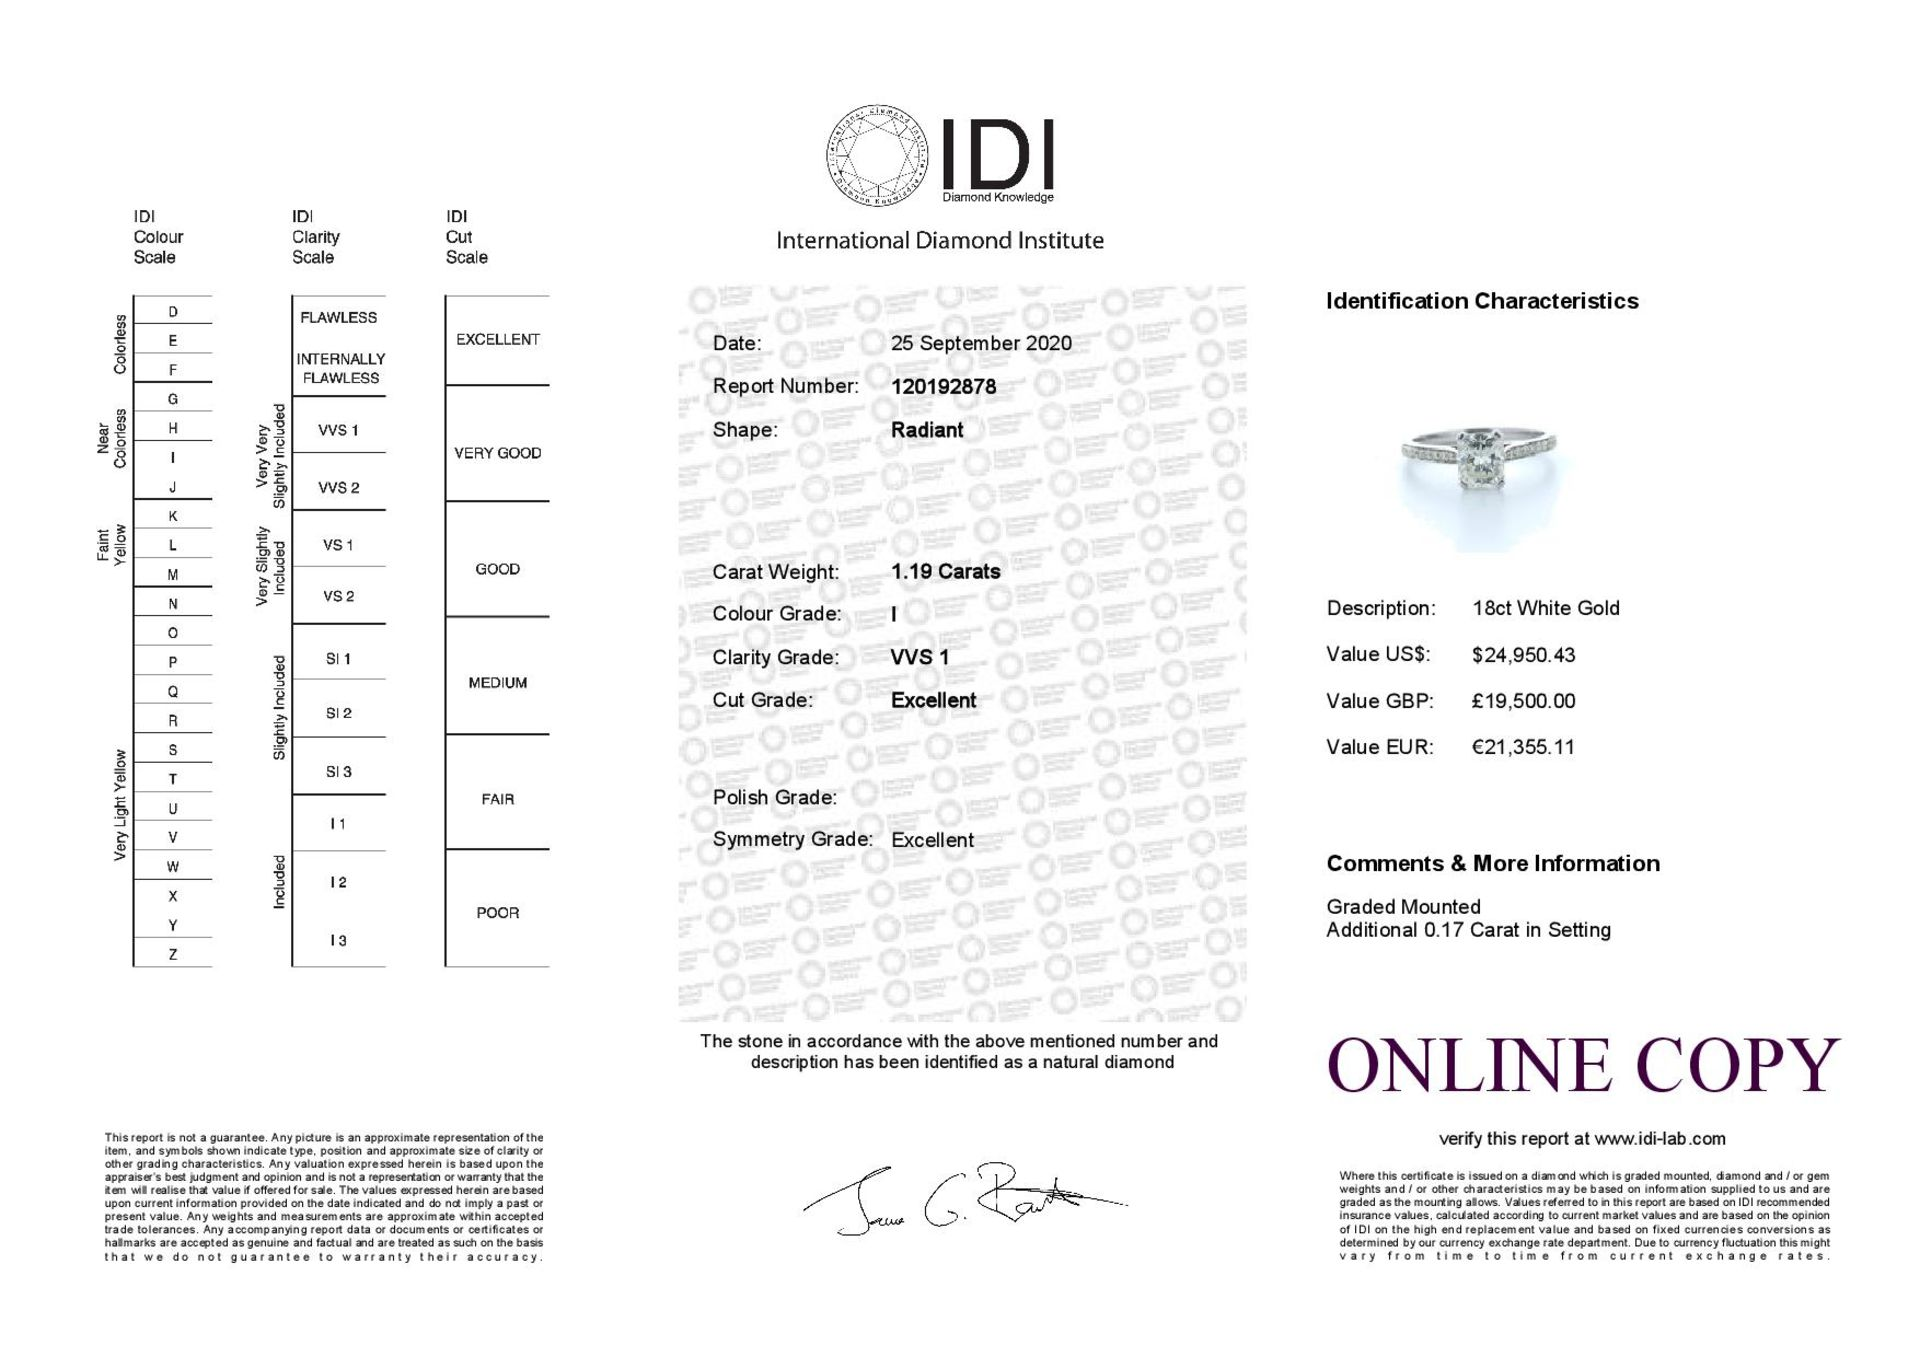 18ct White Gold Radiant Cut Diamond Ring 1.23 (1.08) Carats - Valued by IDI £19,500.00 - 18ct - Image 5 of 5